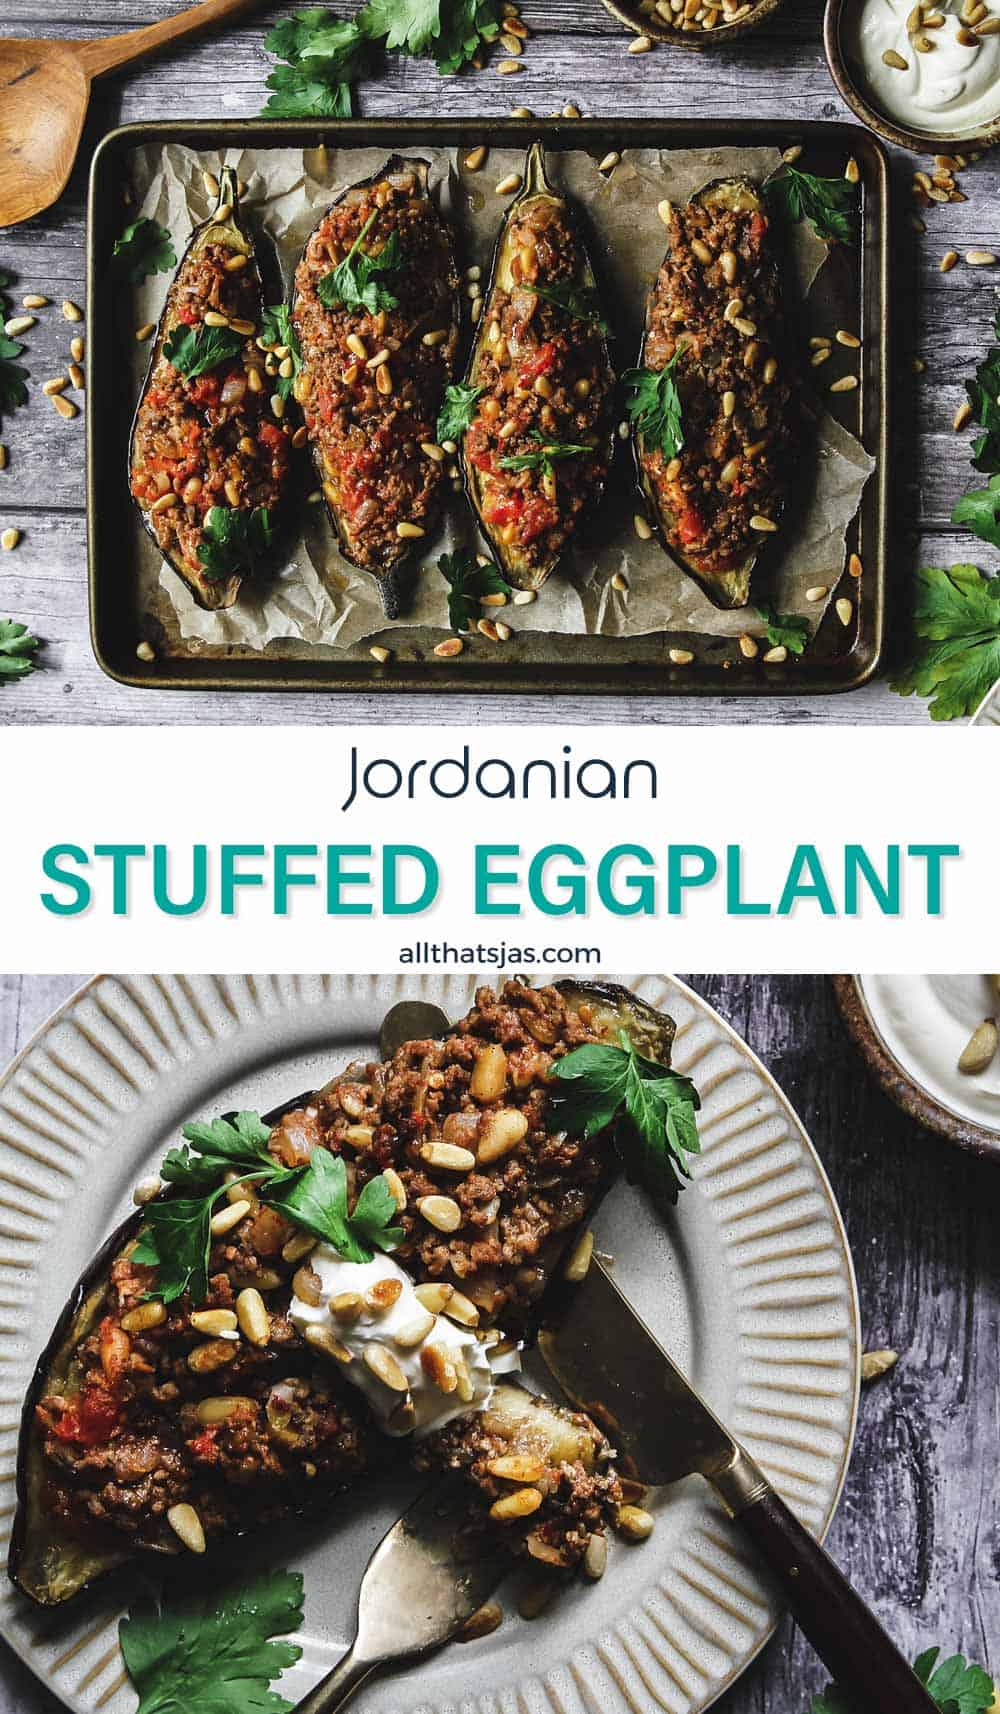 Two photo image of eggplants filled with ground lamb mixture and text in the middle.